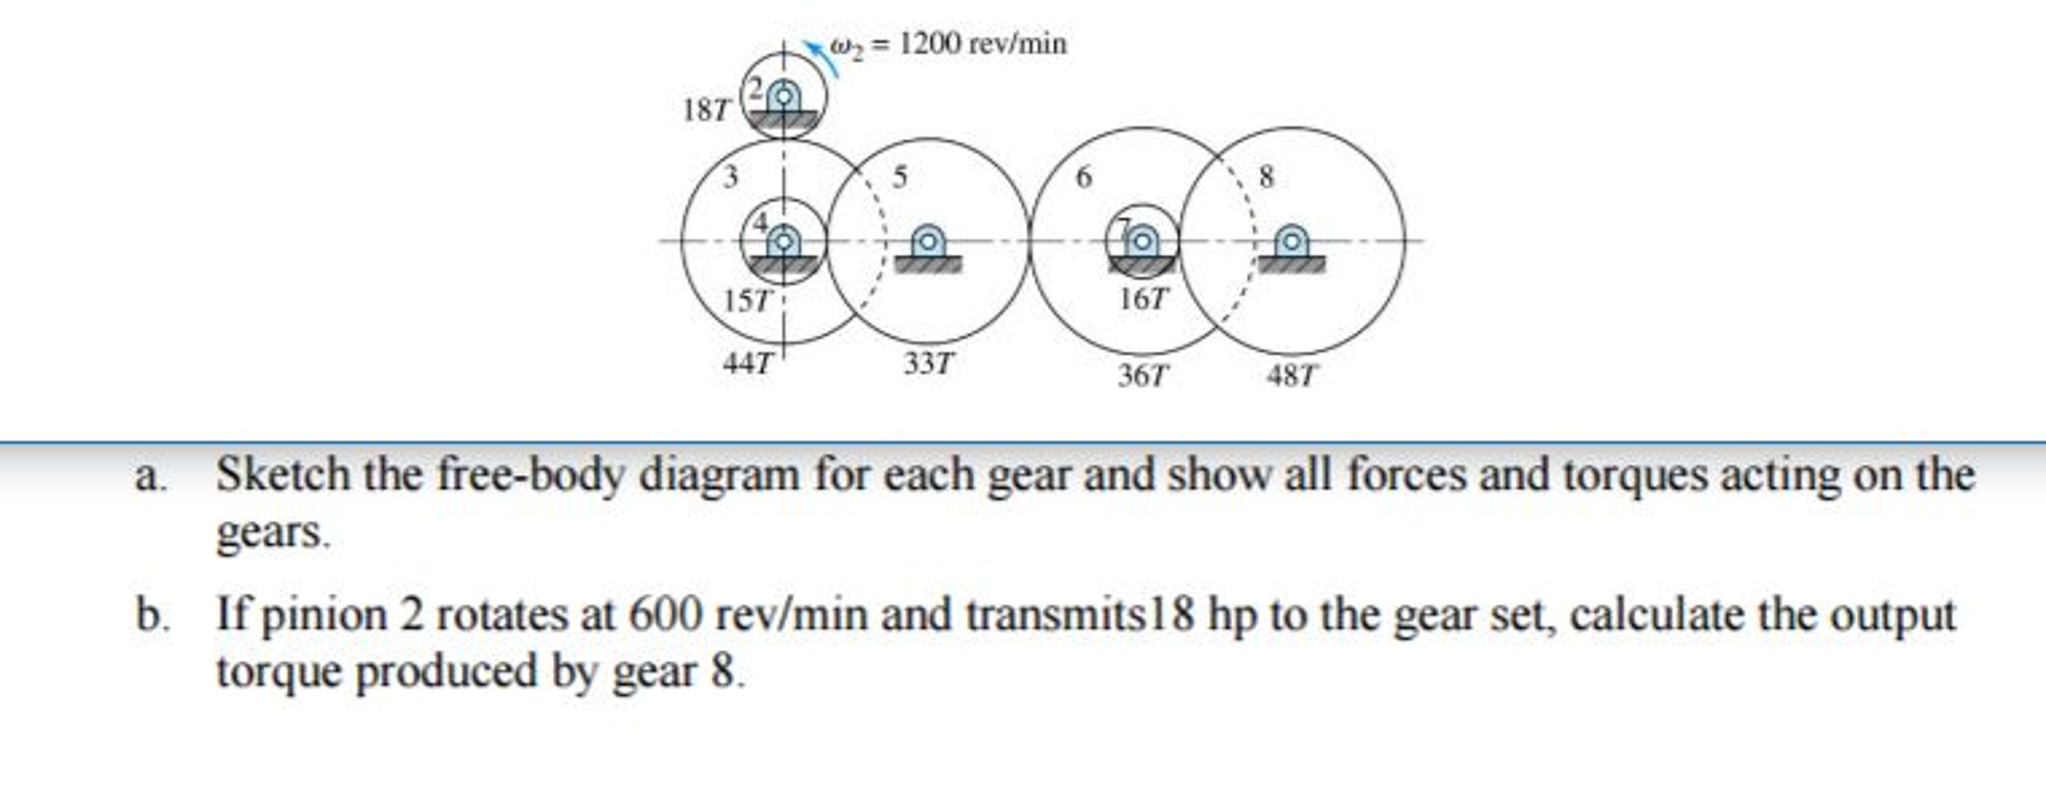 solved sketch the free body diagram for each gear and sho Funny Gears Diagram question sketch the free body diagram for each gear and show all forces and torques acting on the gears